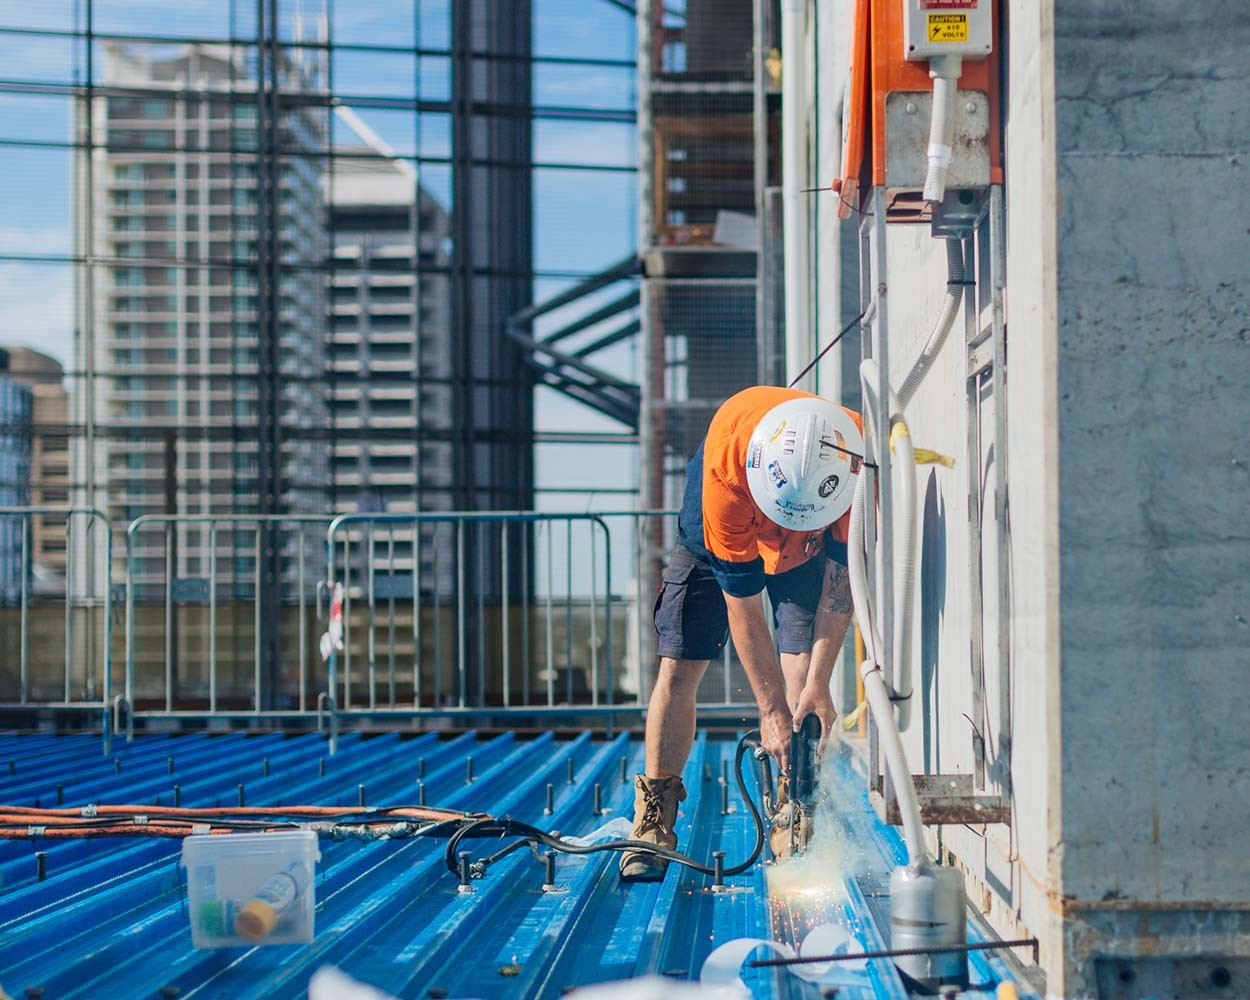 A construction worker on a roof drilling